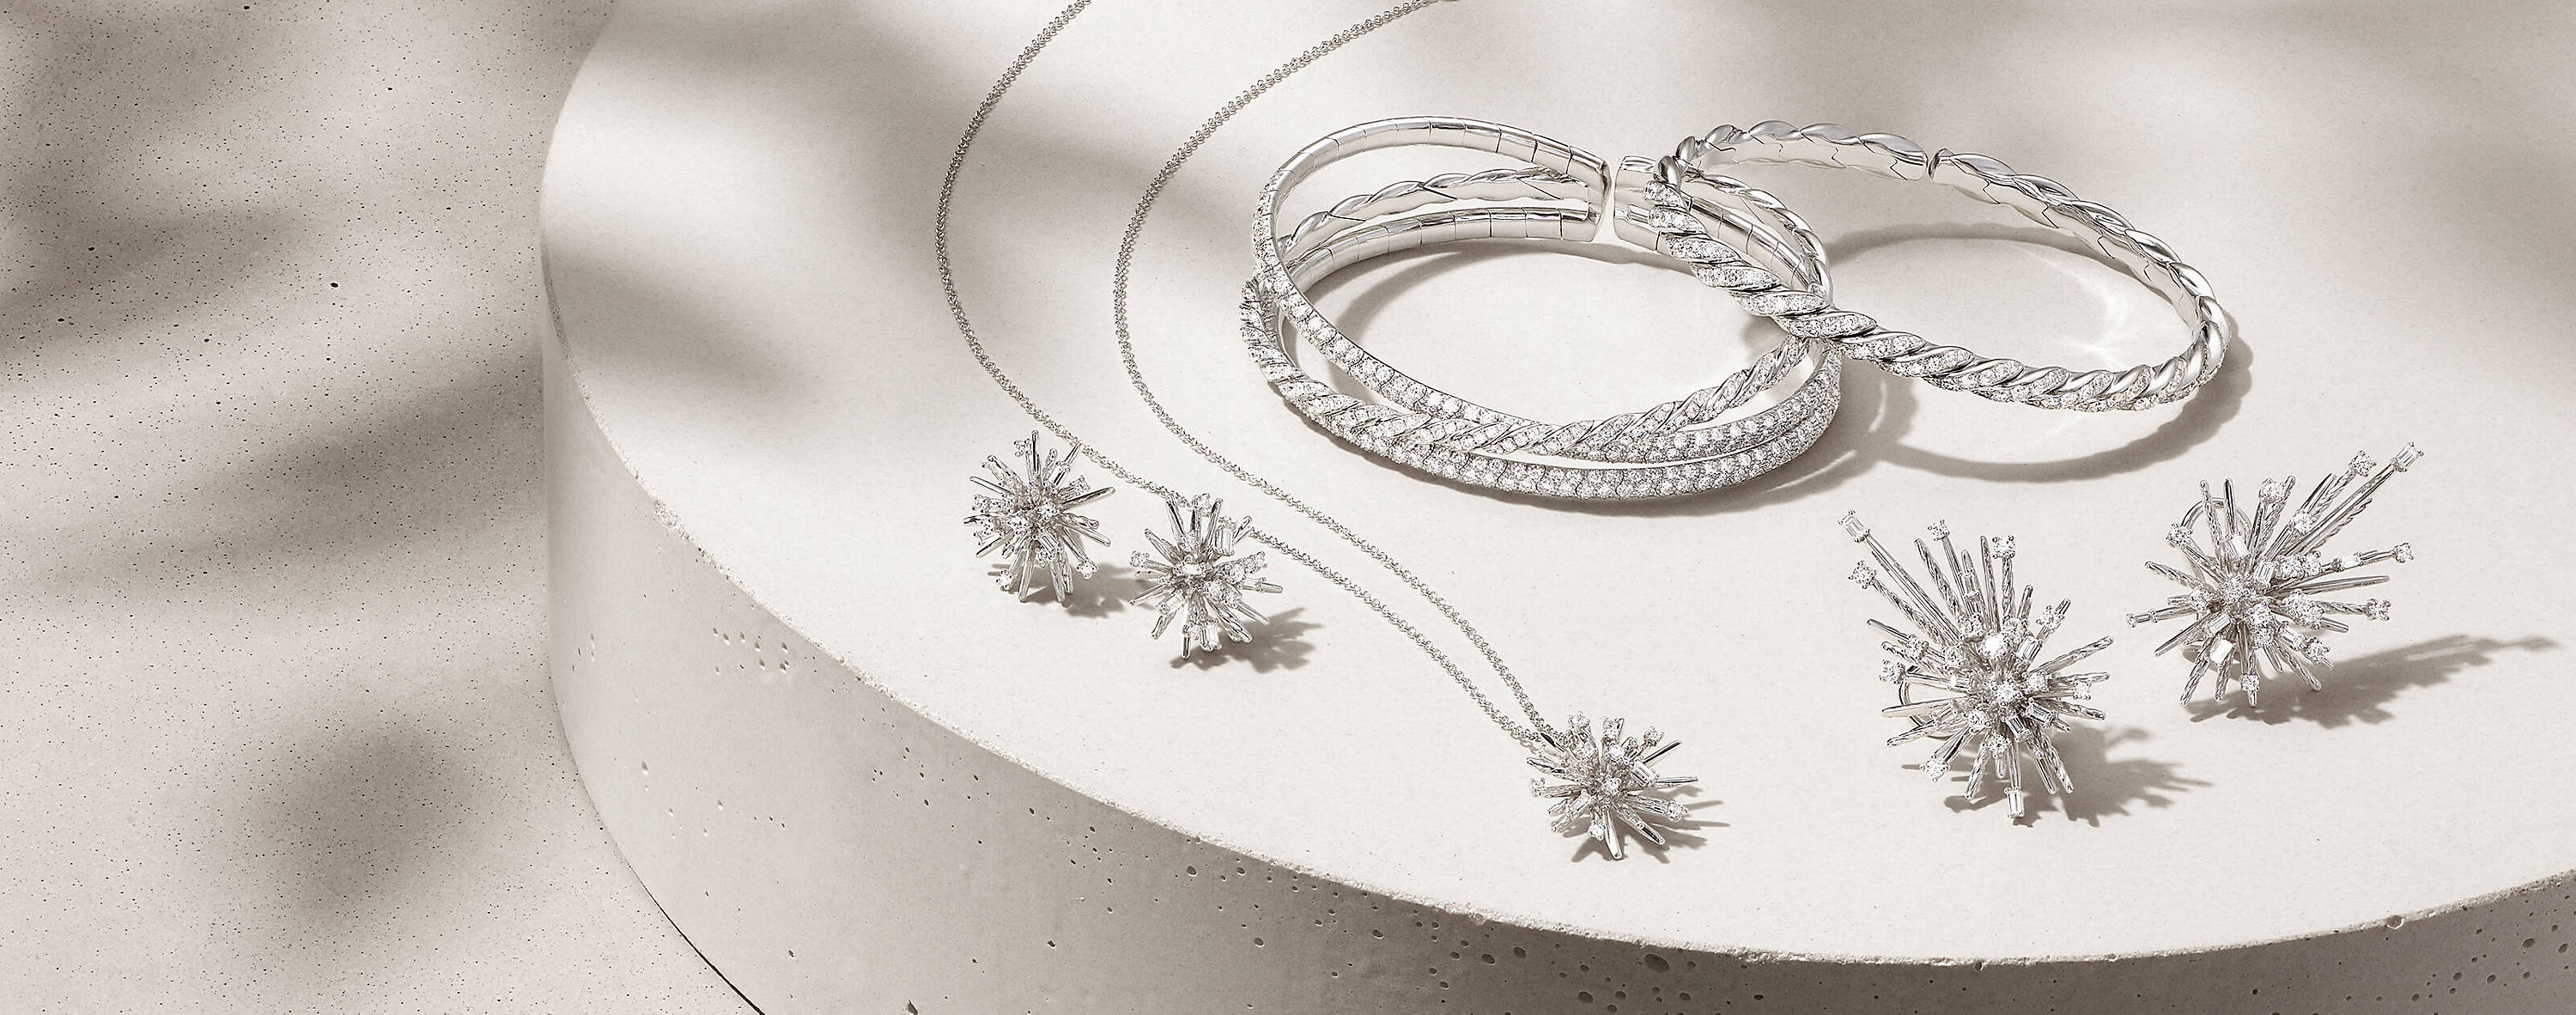 An overhead shot of stud and climber earrings, and a pendant necklace from the Supernova Collection placed below Stax and Pavéflex bracelets—all in 18K white gold with diamonds—on a round beige stone with leafy shadows.